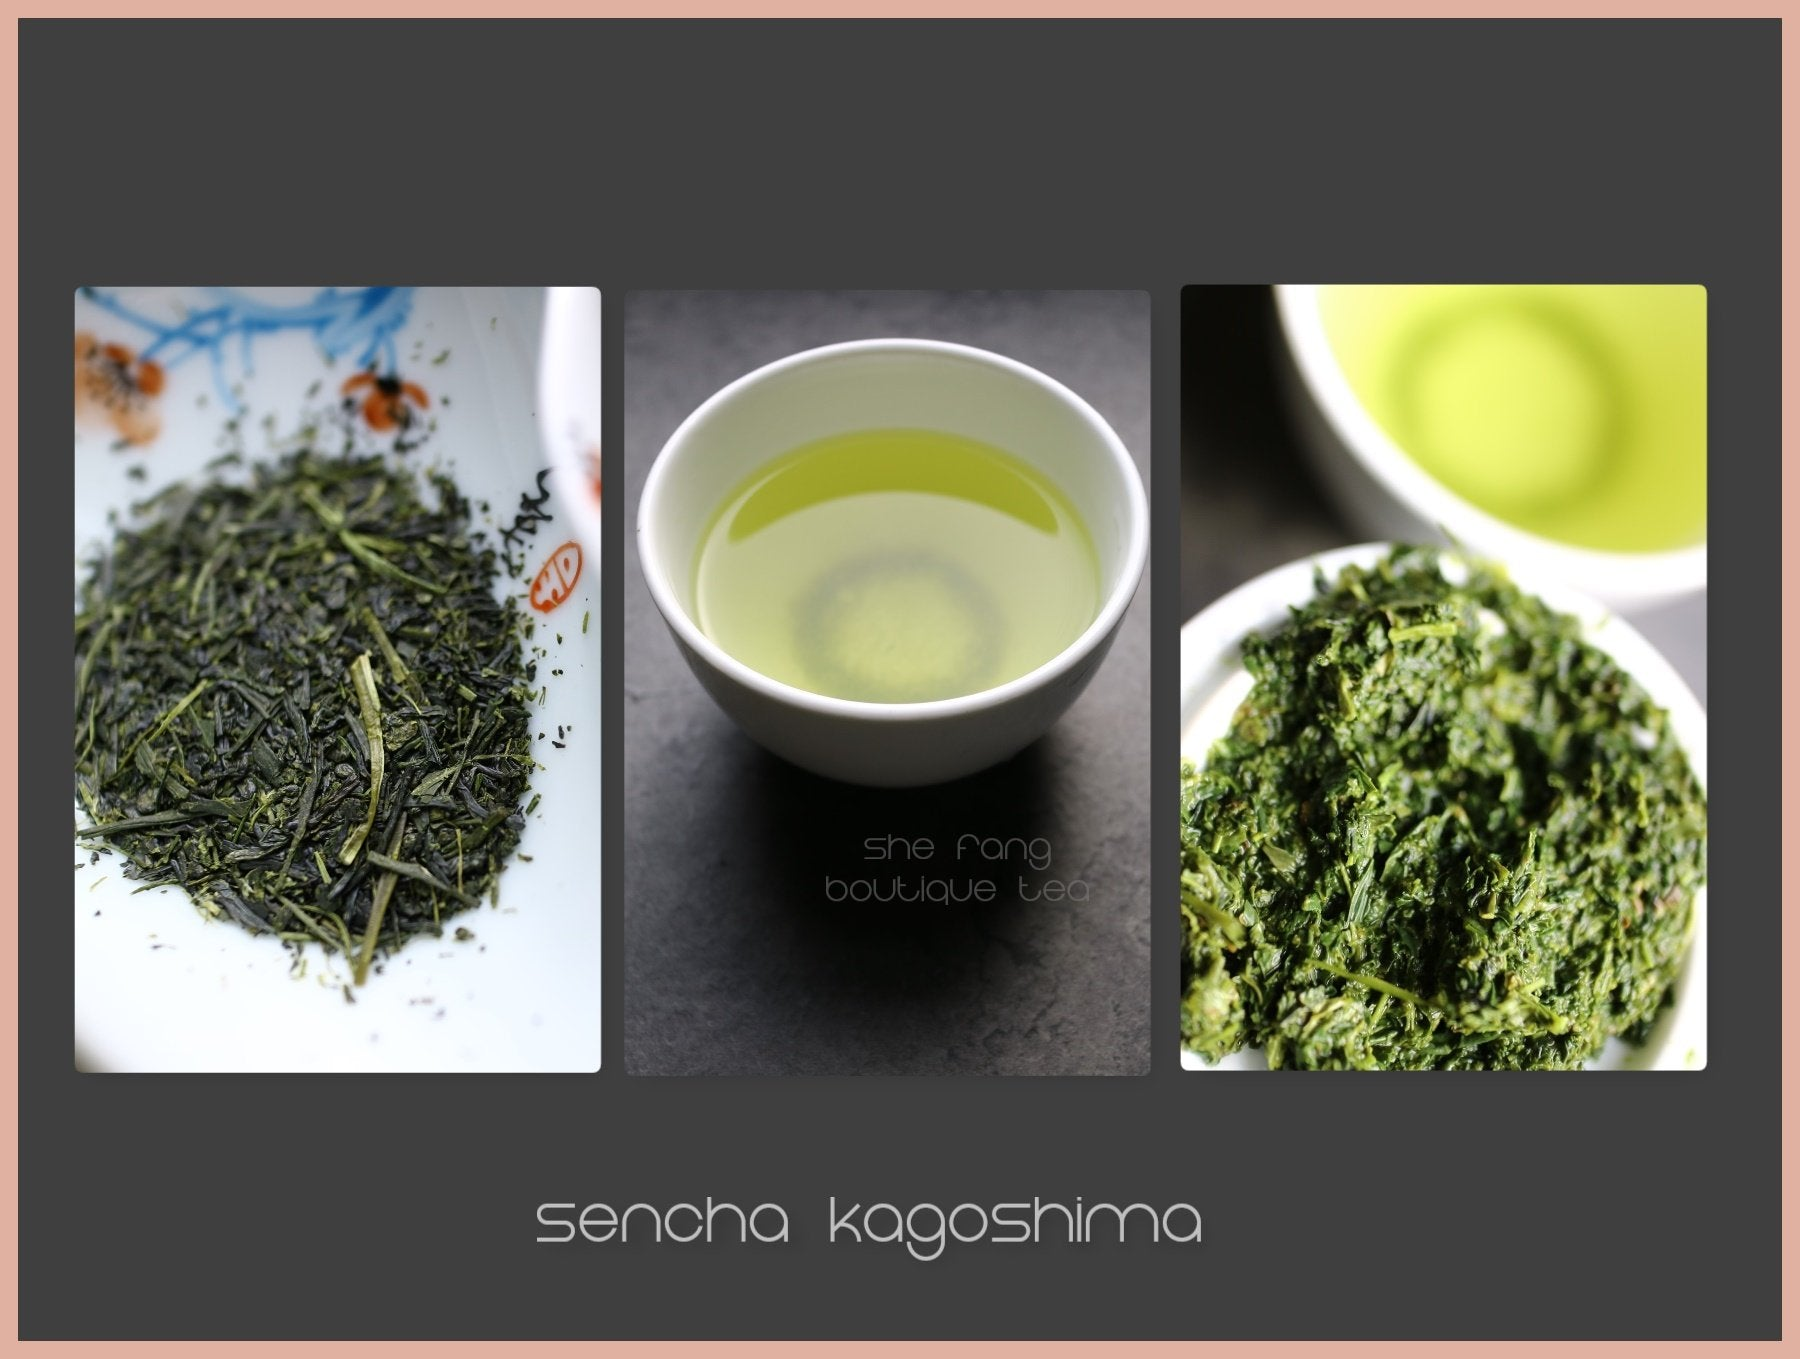 Tea sourcing batch n.239 - Teas from Japan - Sencha from Kagoshima prefecture